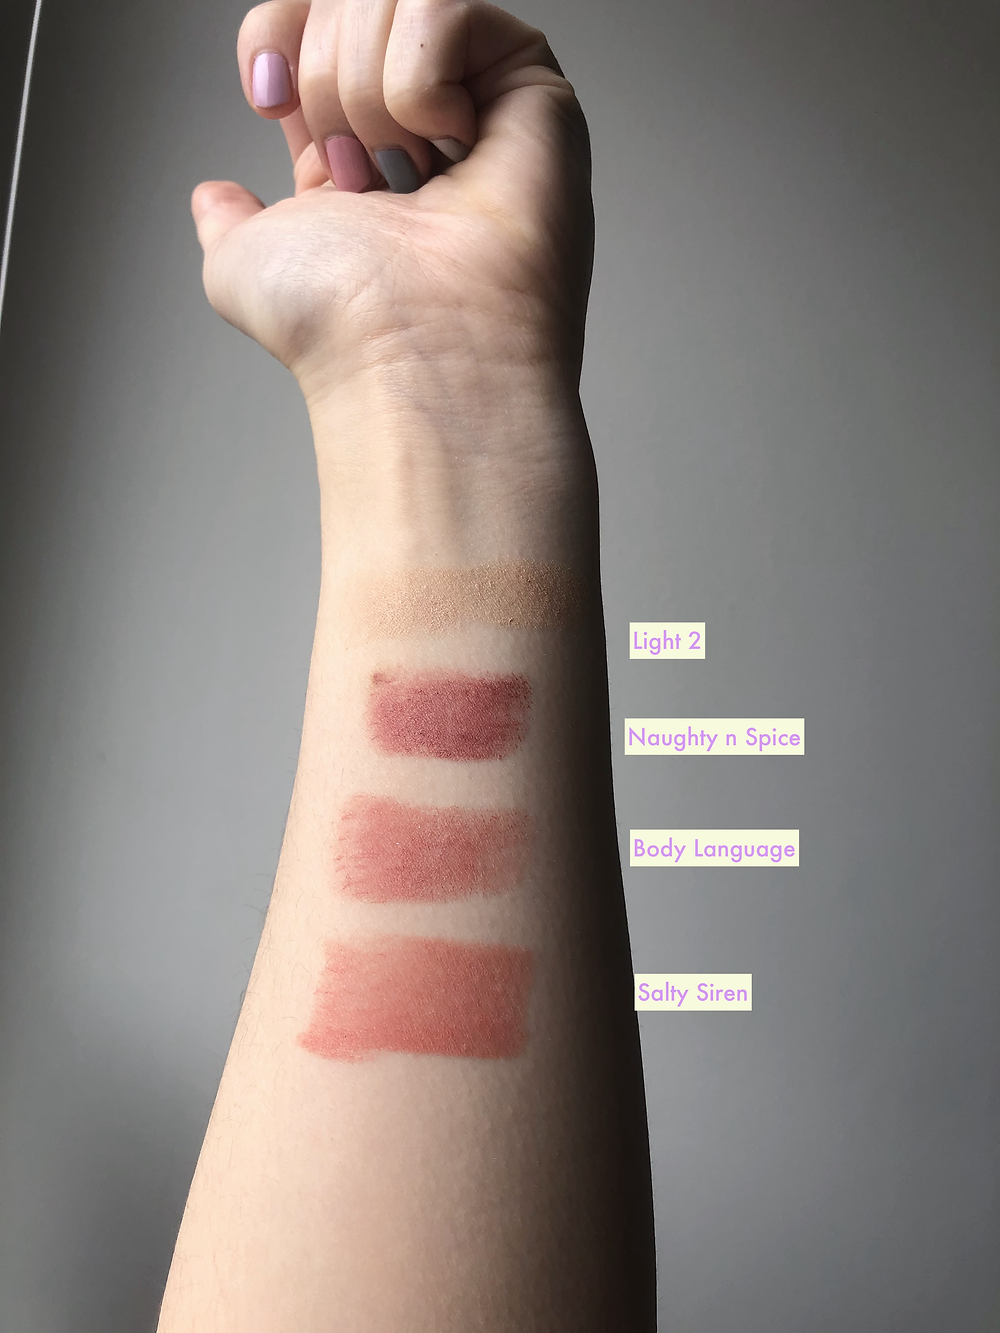 Nudies Tinted Blur and Blush Swatches (Light 2, Salty Siren, Body Language, Naughty n Spice)